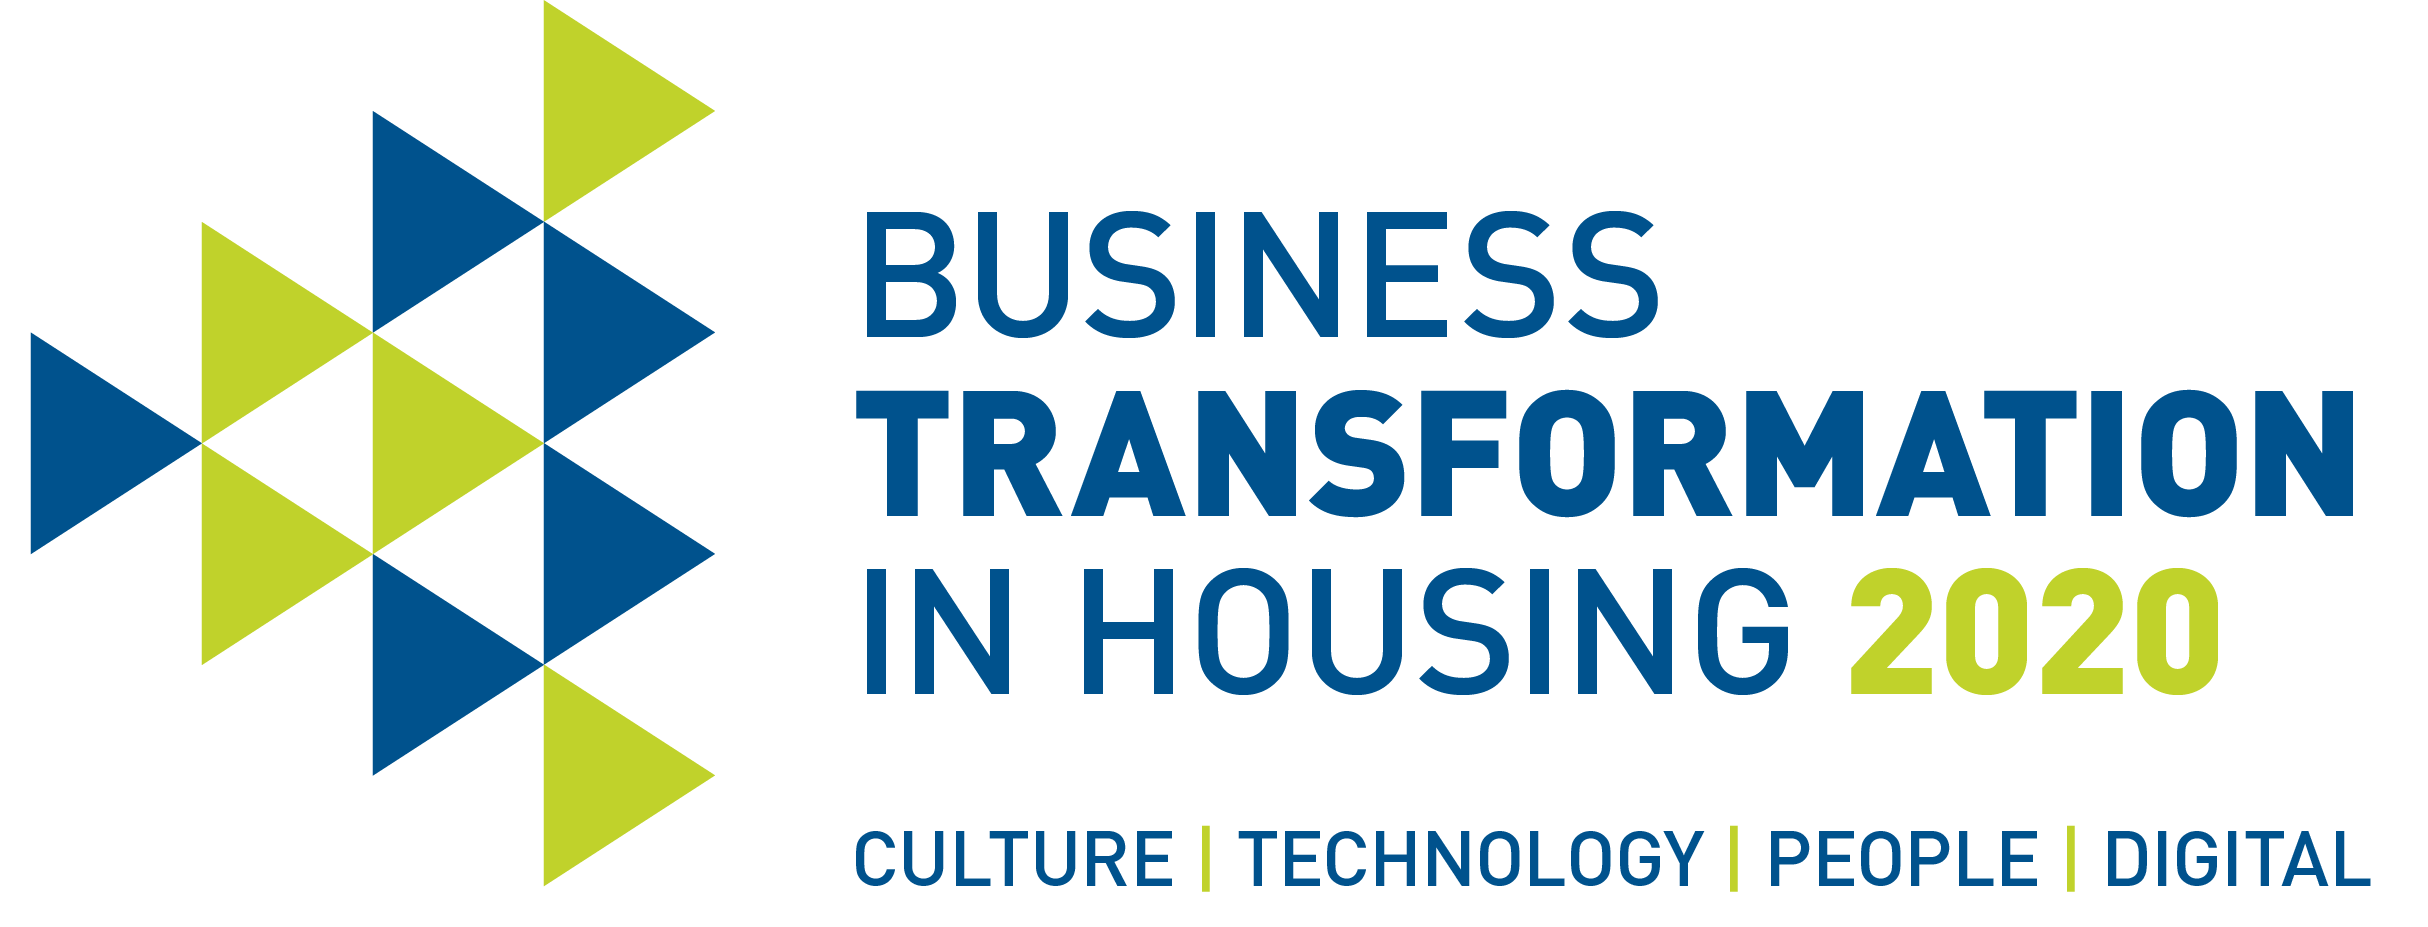 Business Transformation in Housing 2020